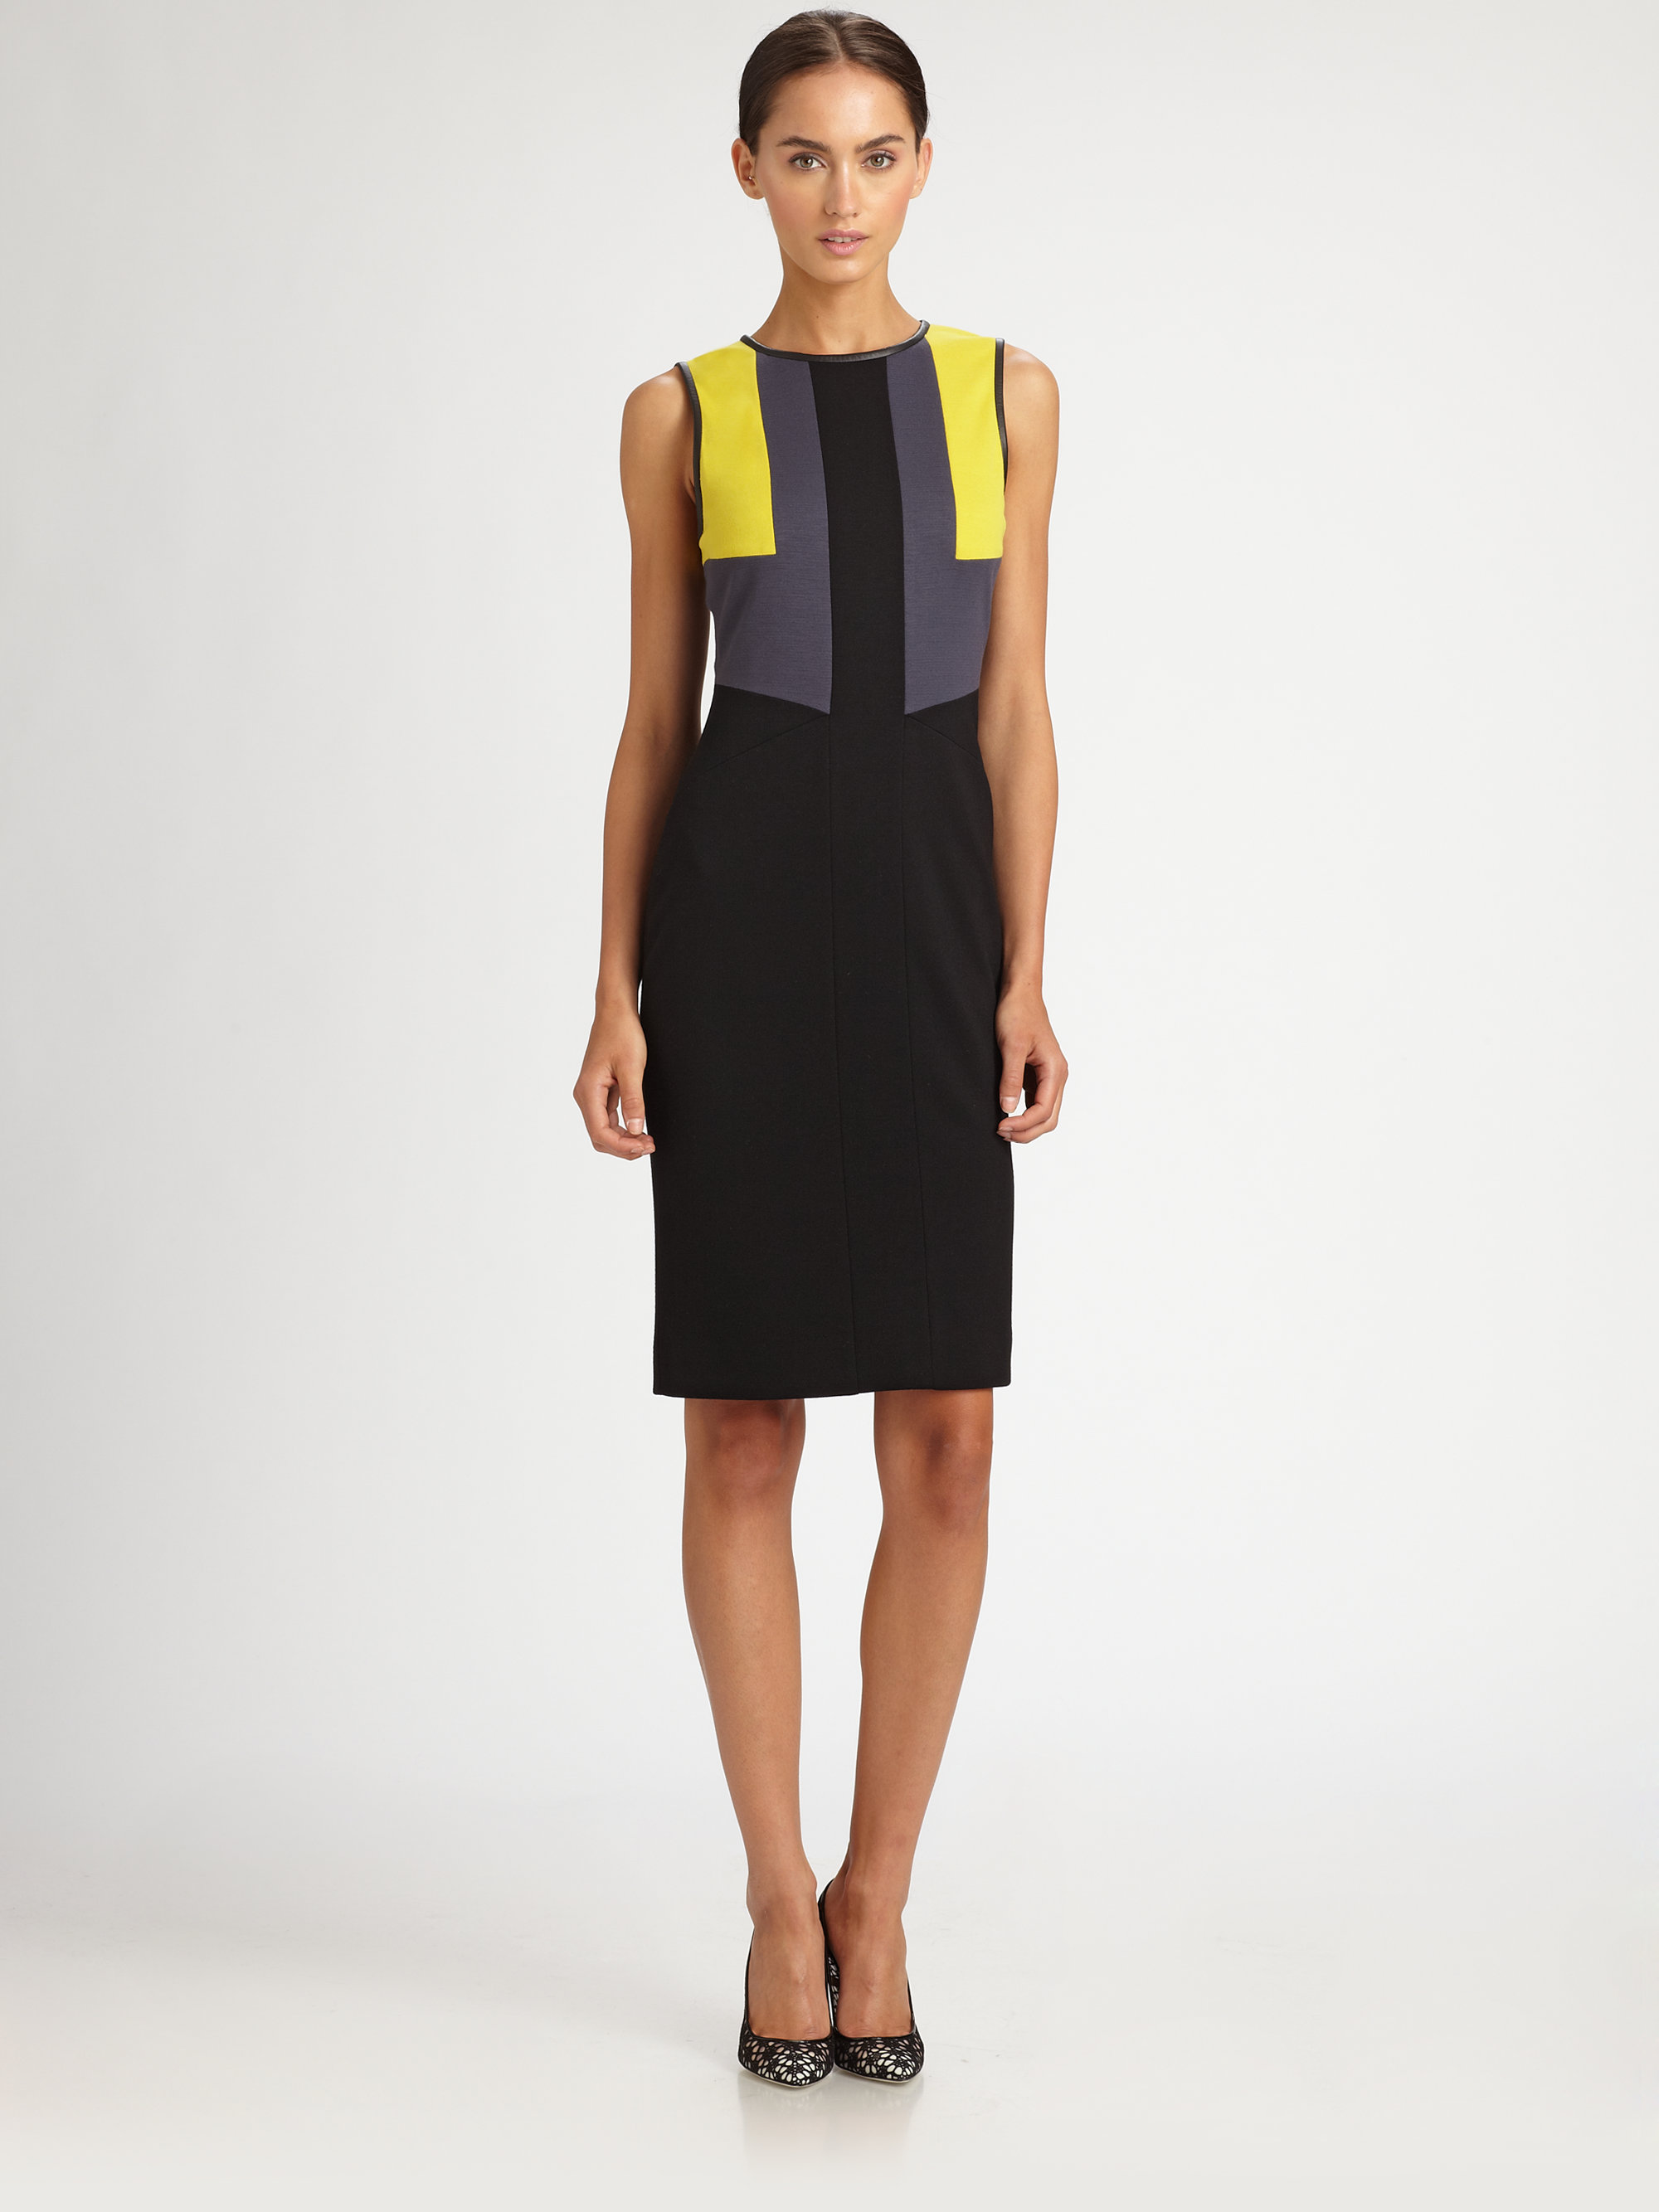 Jason WuWomen's Black Colorblock Jersey Dress